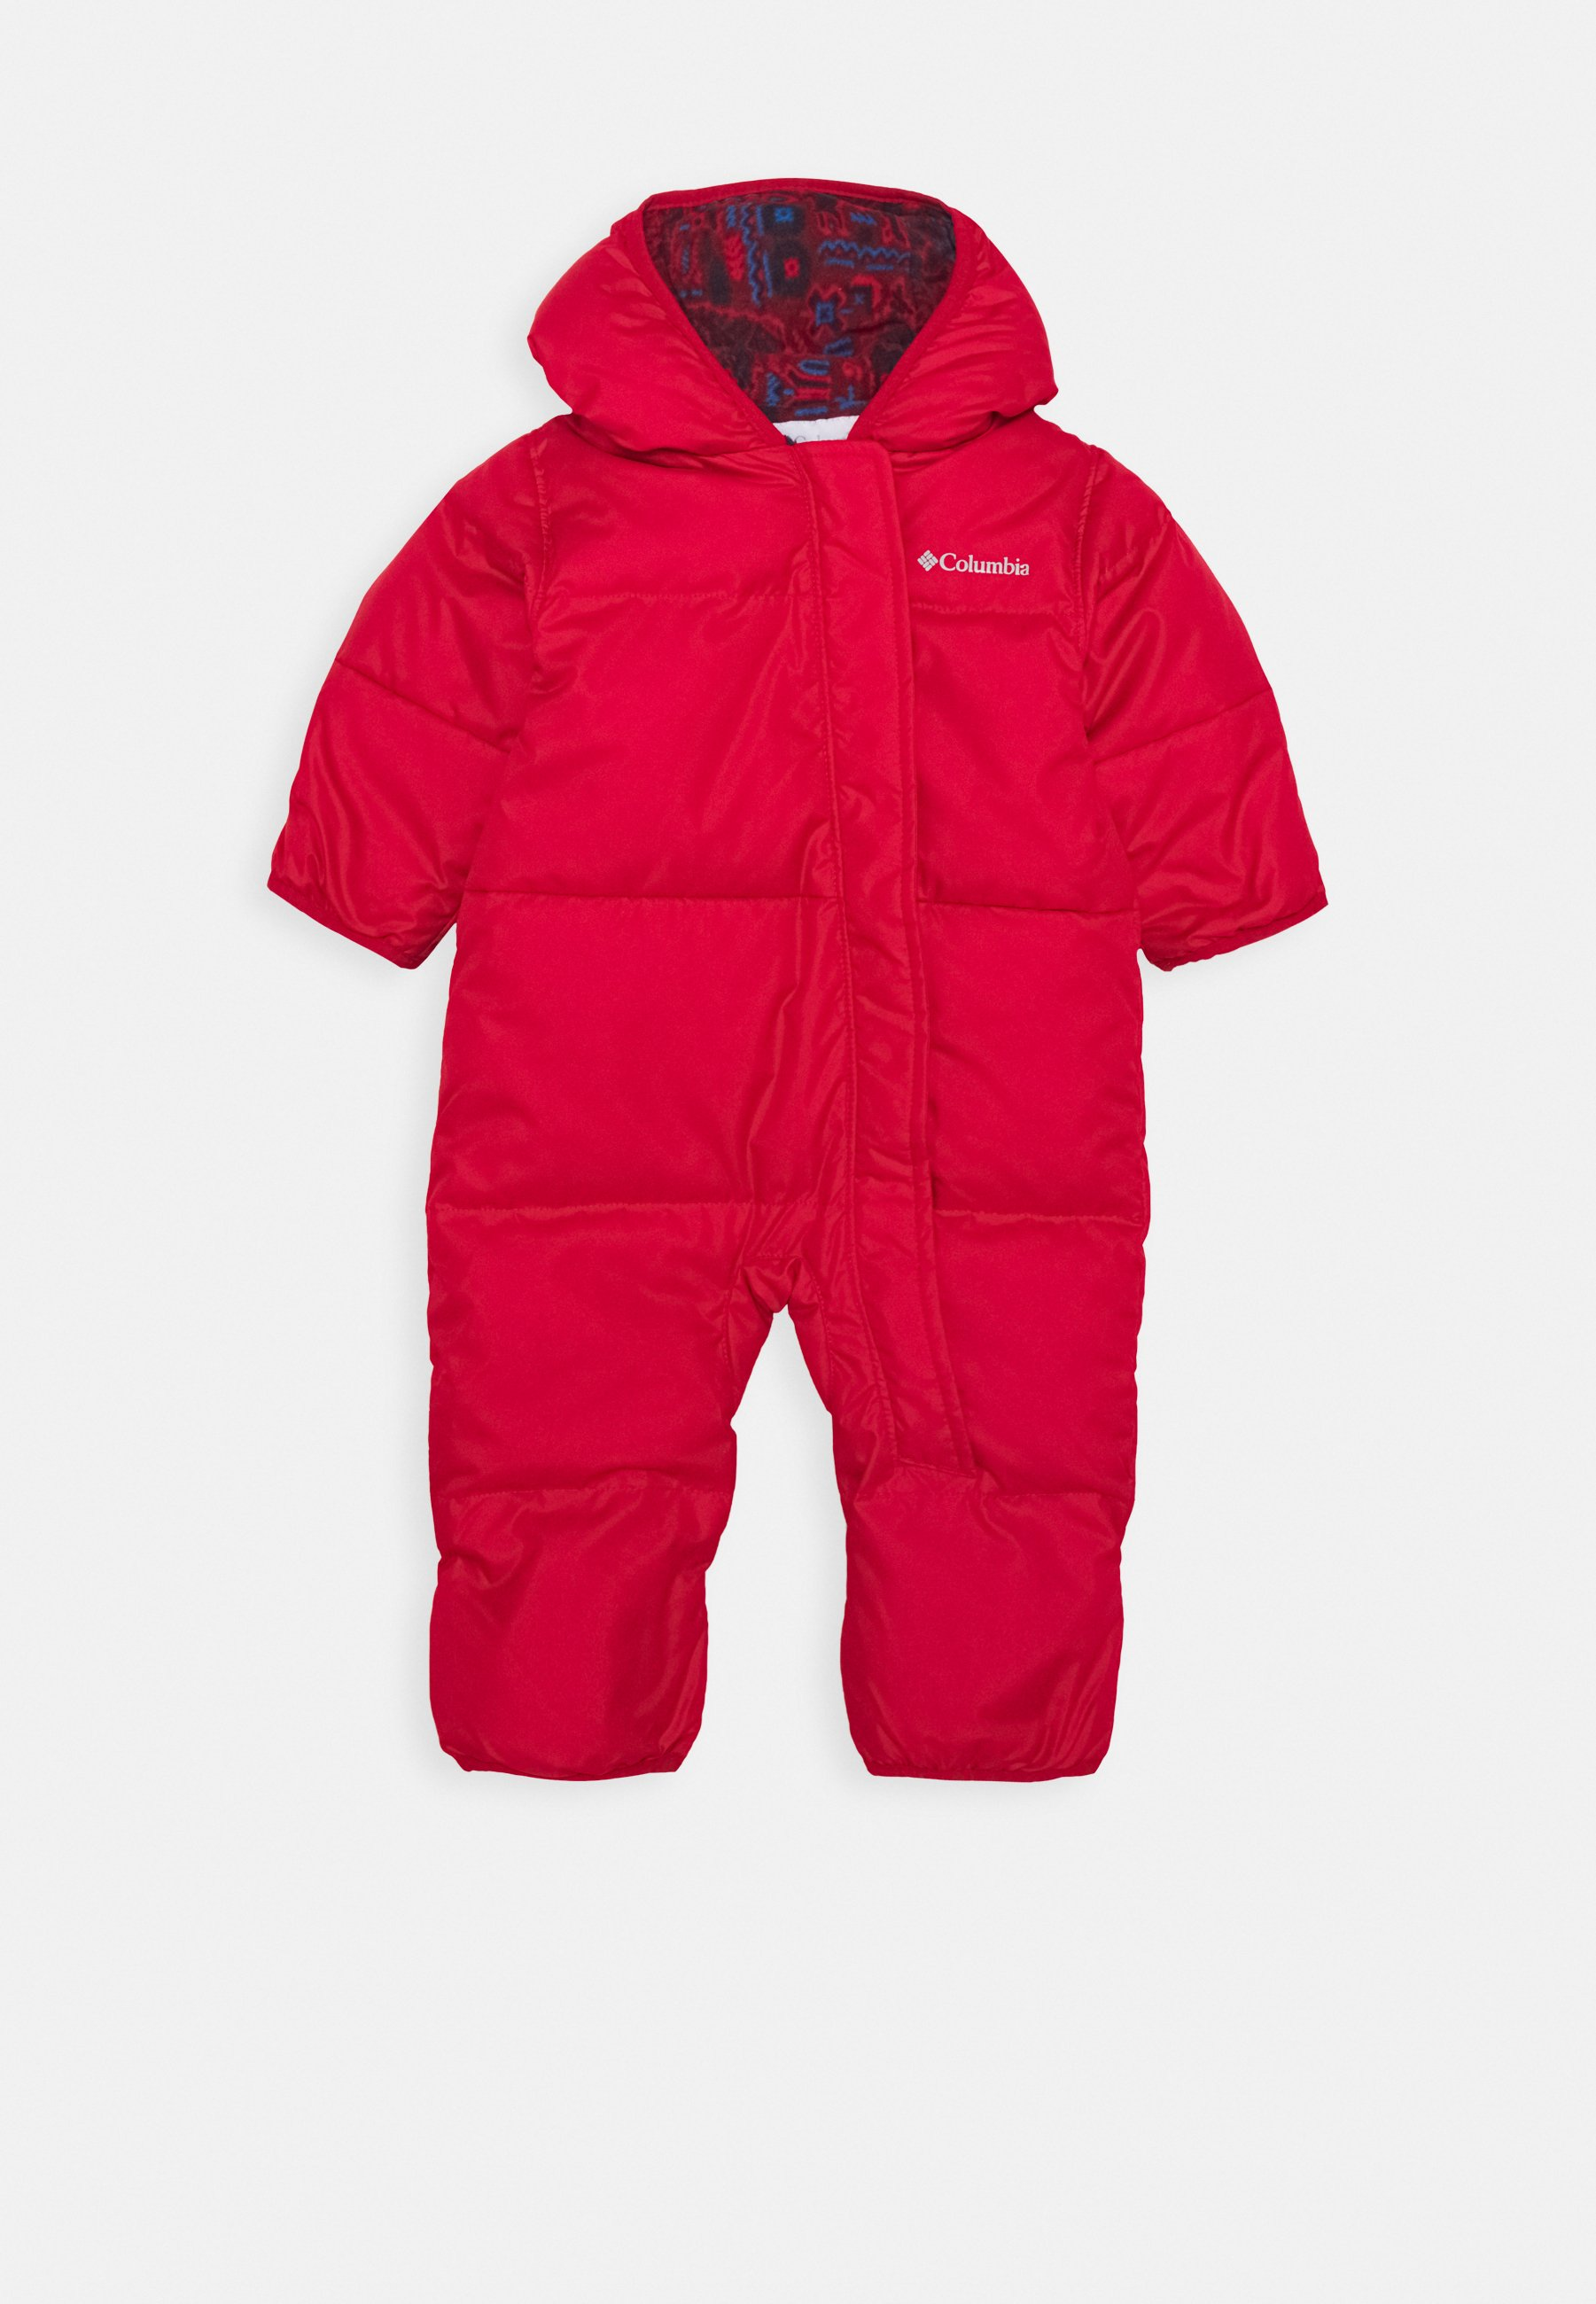 Kids SNUGGLY BUNNY BUNTING - Snowsuit